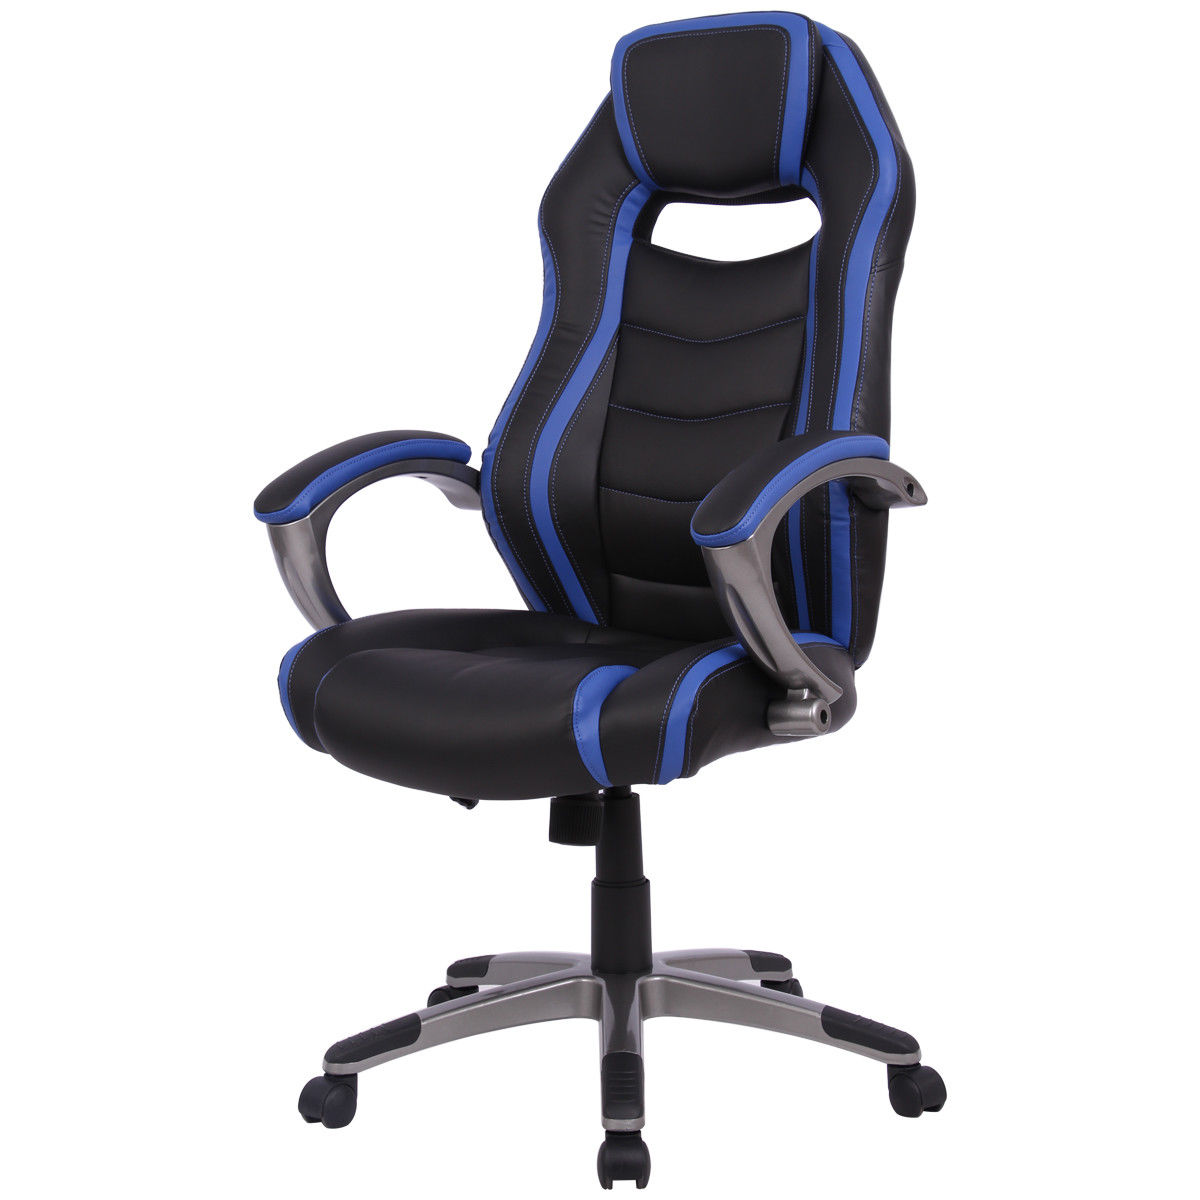 Racing Seat Office Chair Us 109 99 Giantex Racing Car Style High Back Gaming Chair Modern Bucket Seat Computer Desk Office Chair Swivel Office Furniture Hw56143bl In Office